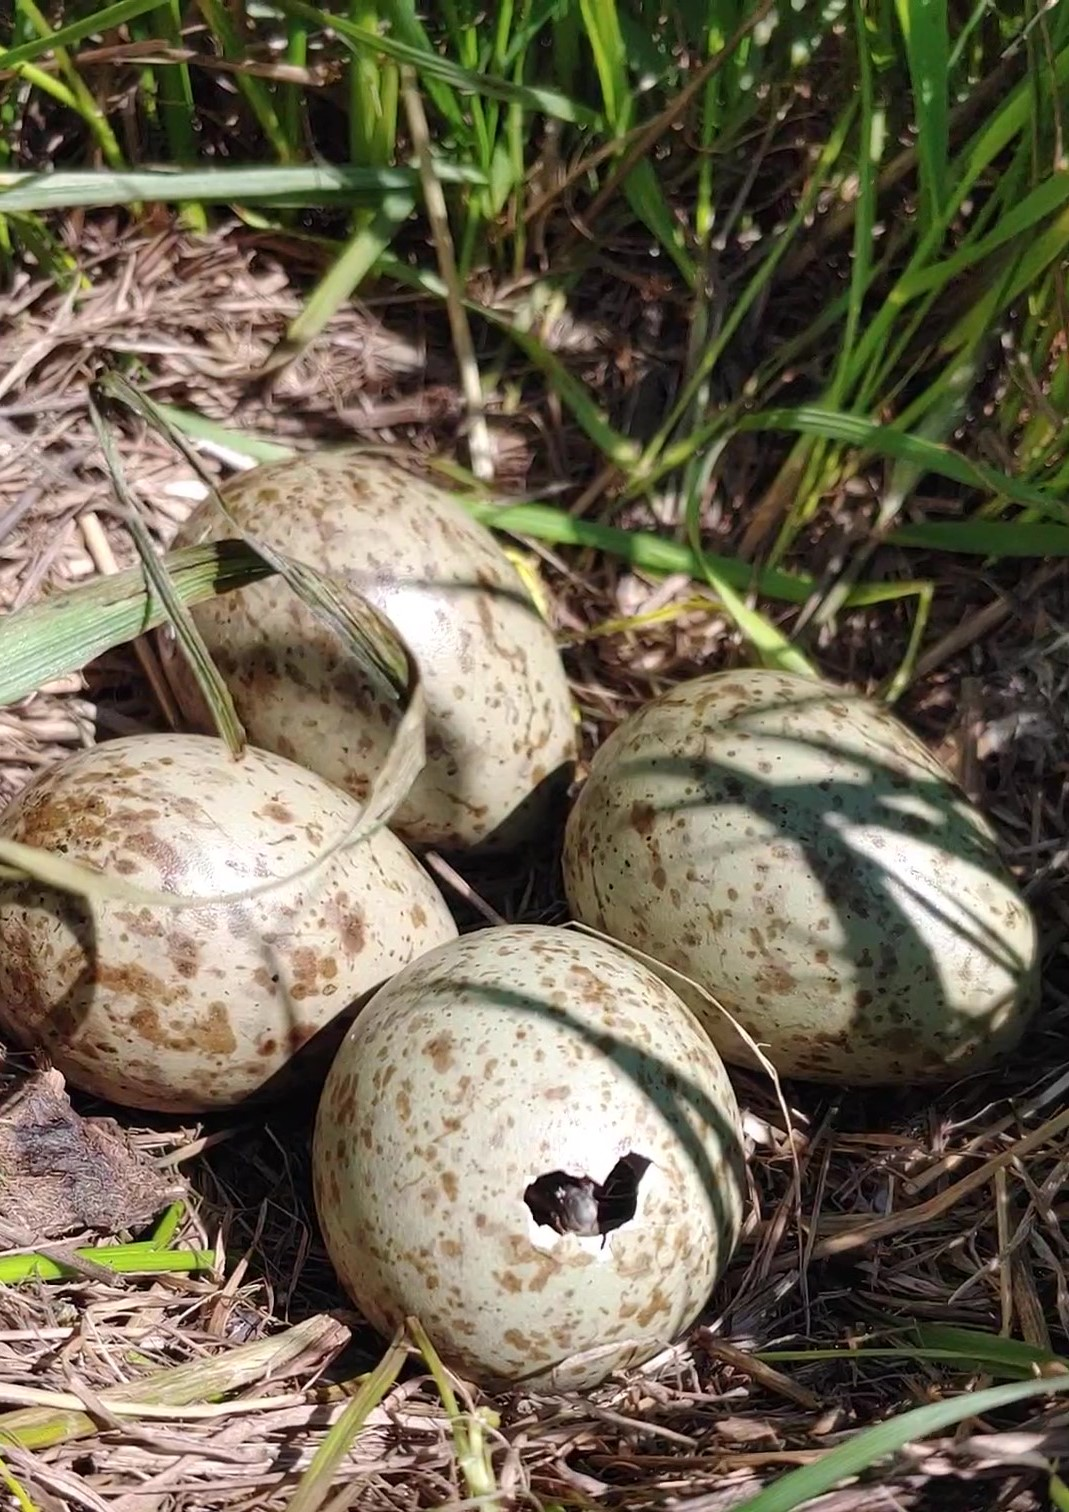 Four speckled eggs. One egg has a cracked hole in it with a small bird bill poking out